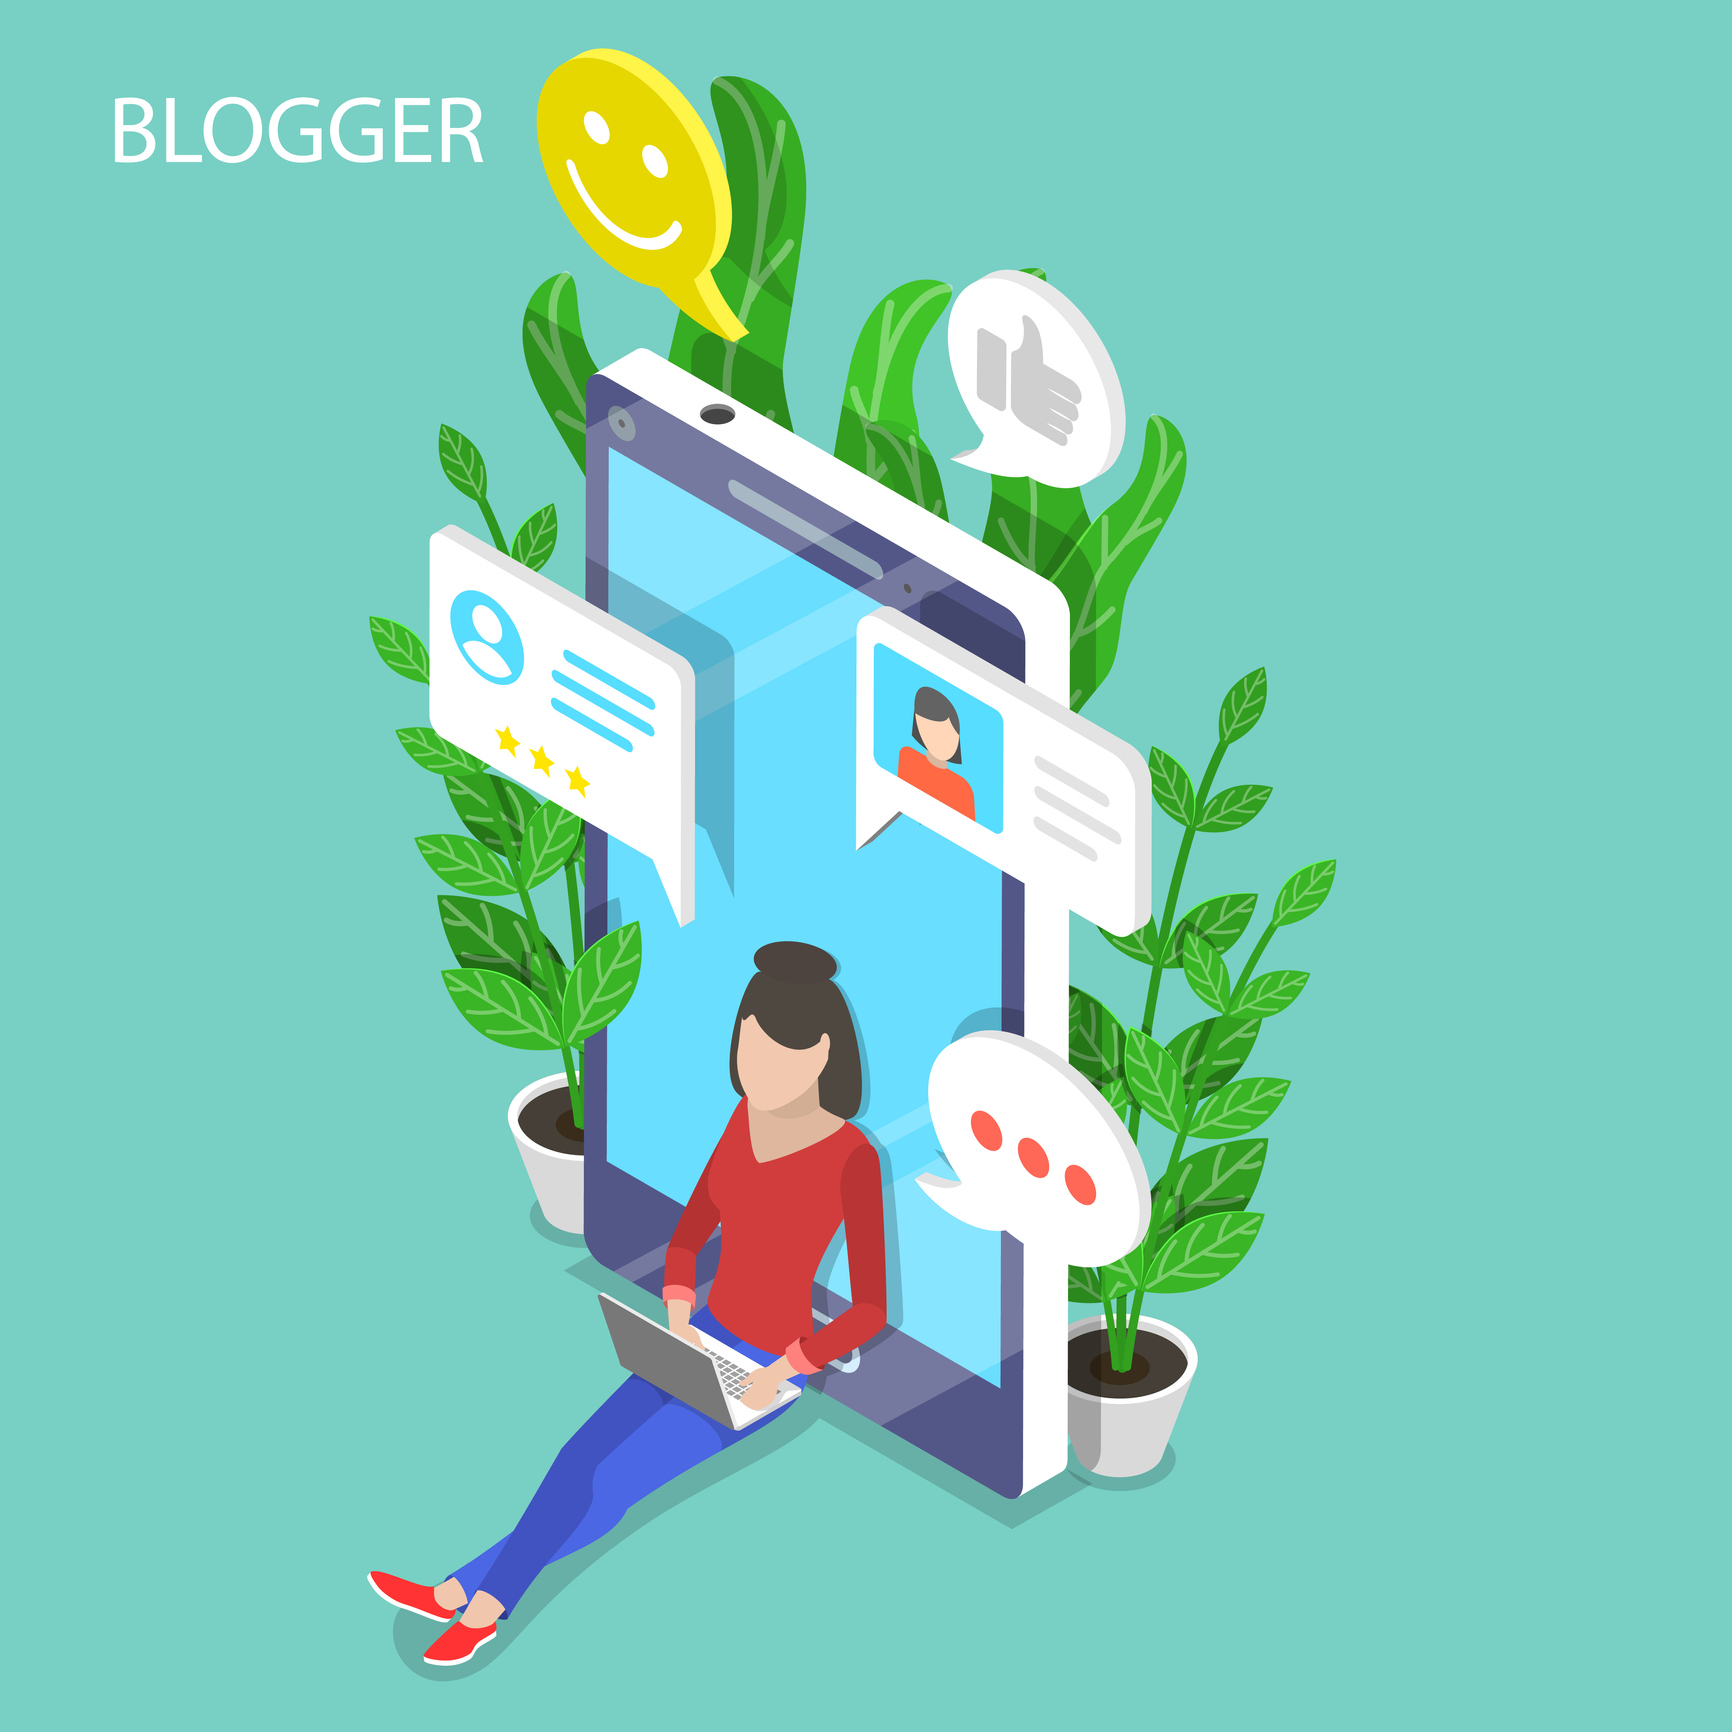 Isometric-flat-vector-concept-of-blogger,-commercial-blog-posting,-copywriting,-content-marketing-strategy.-1045287696_1735x1735